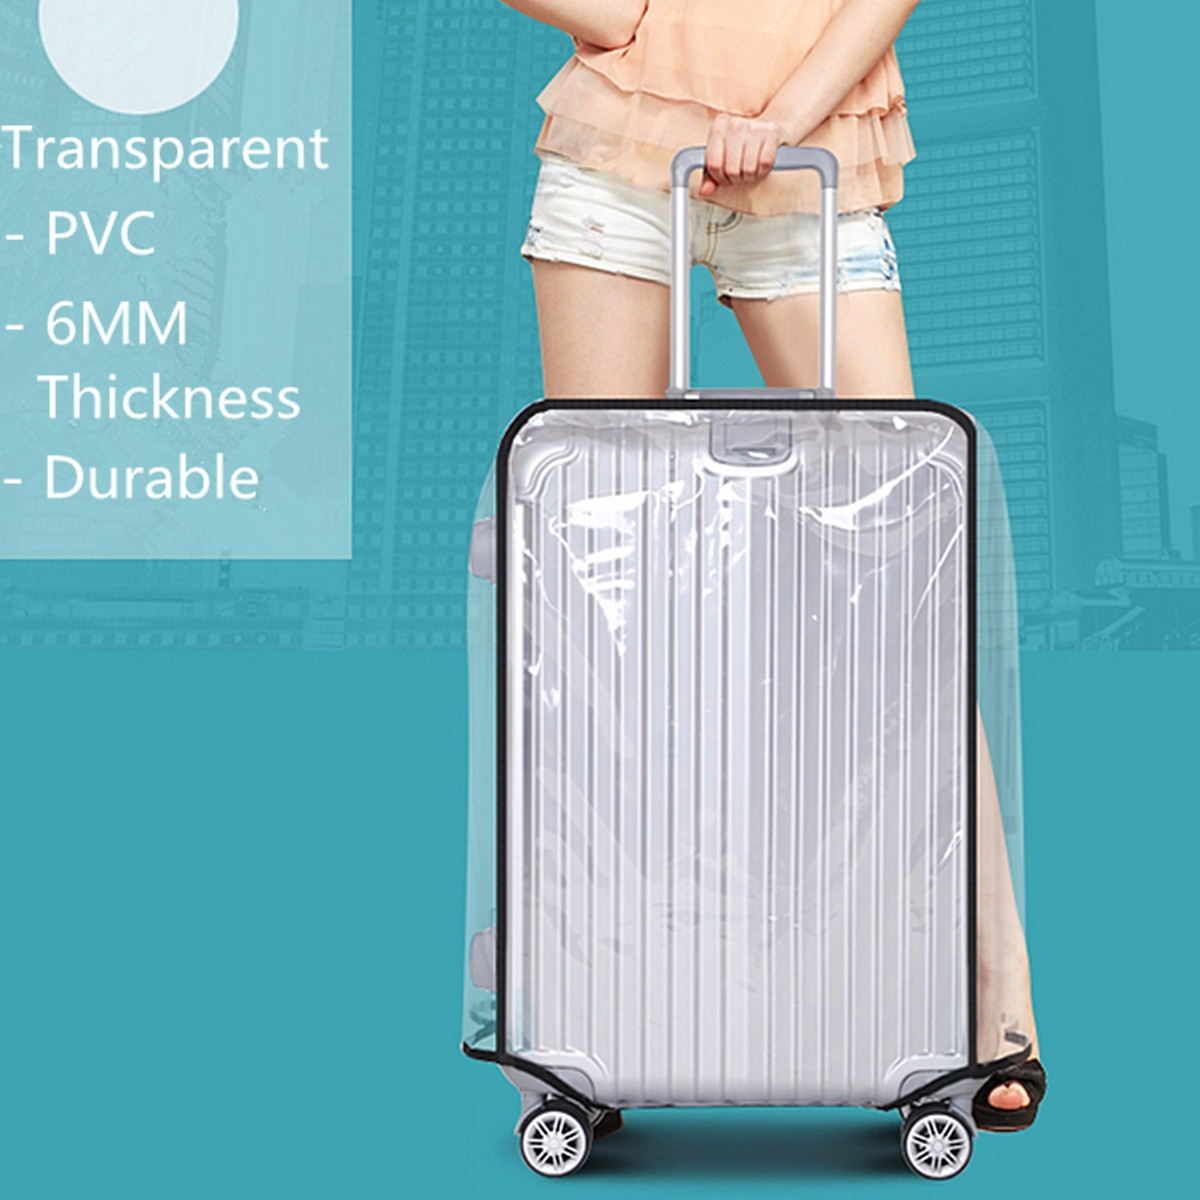 AEQUEEN Waterproof Luggage Cover Transparent PVC Trolley Suitcase Cover DustProof Luggage Protective Cover Travel Case 20-30inch